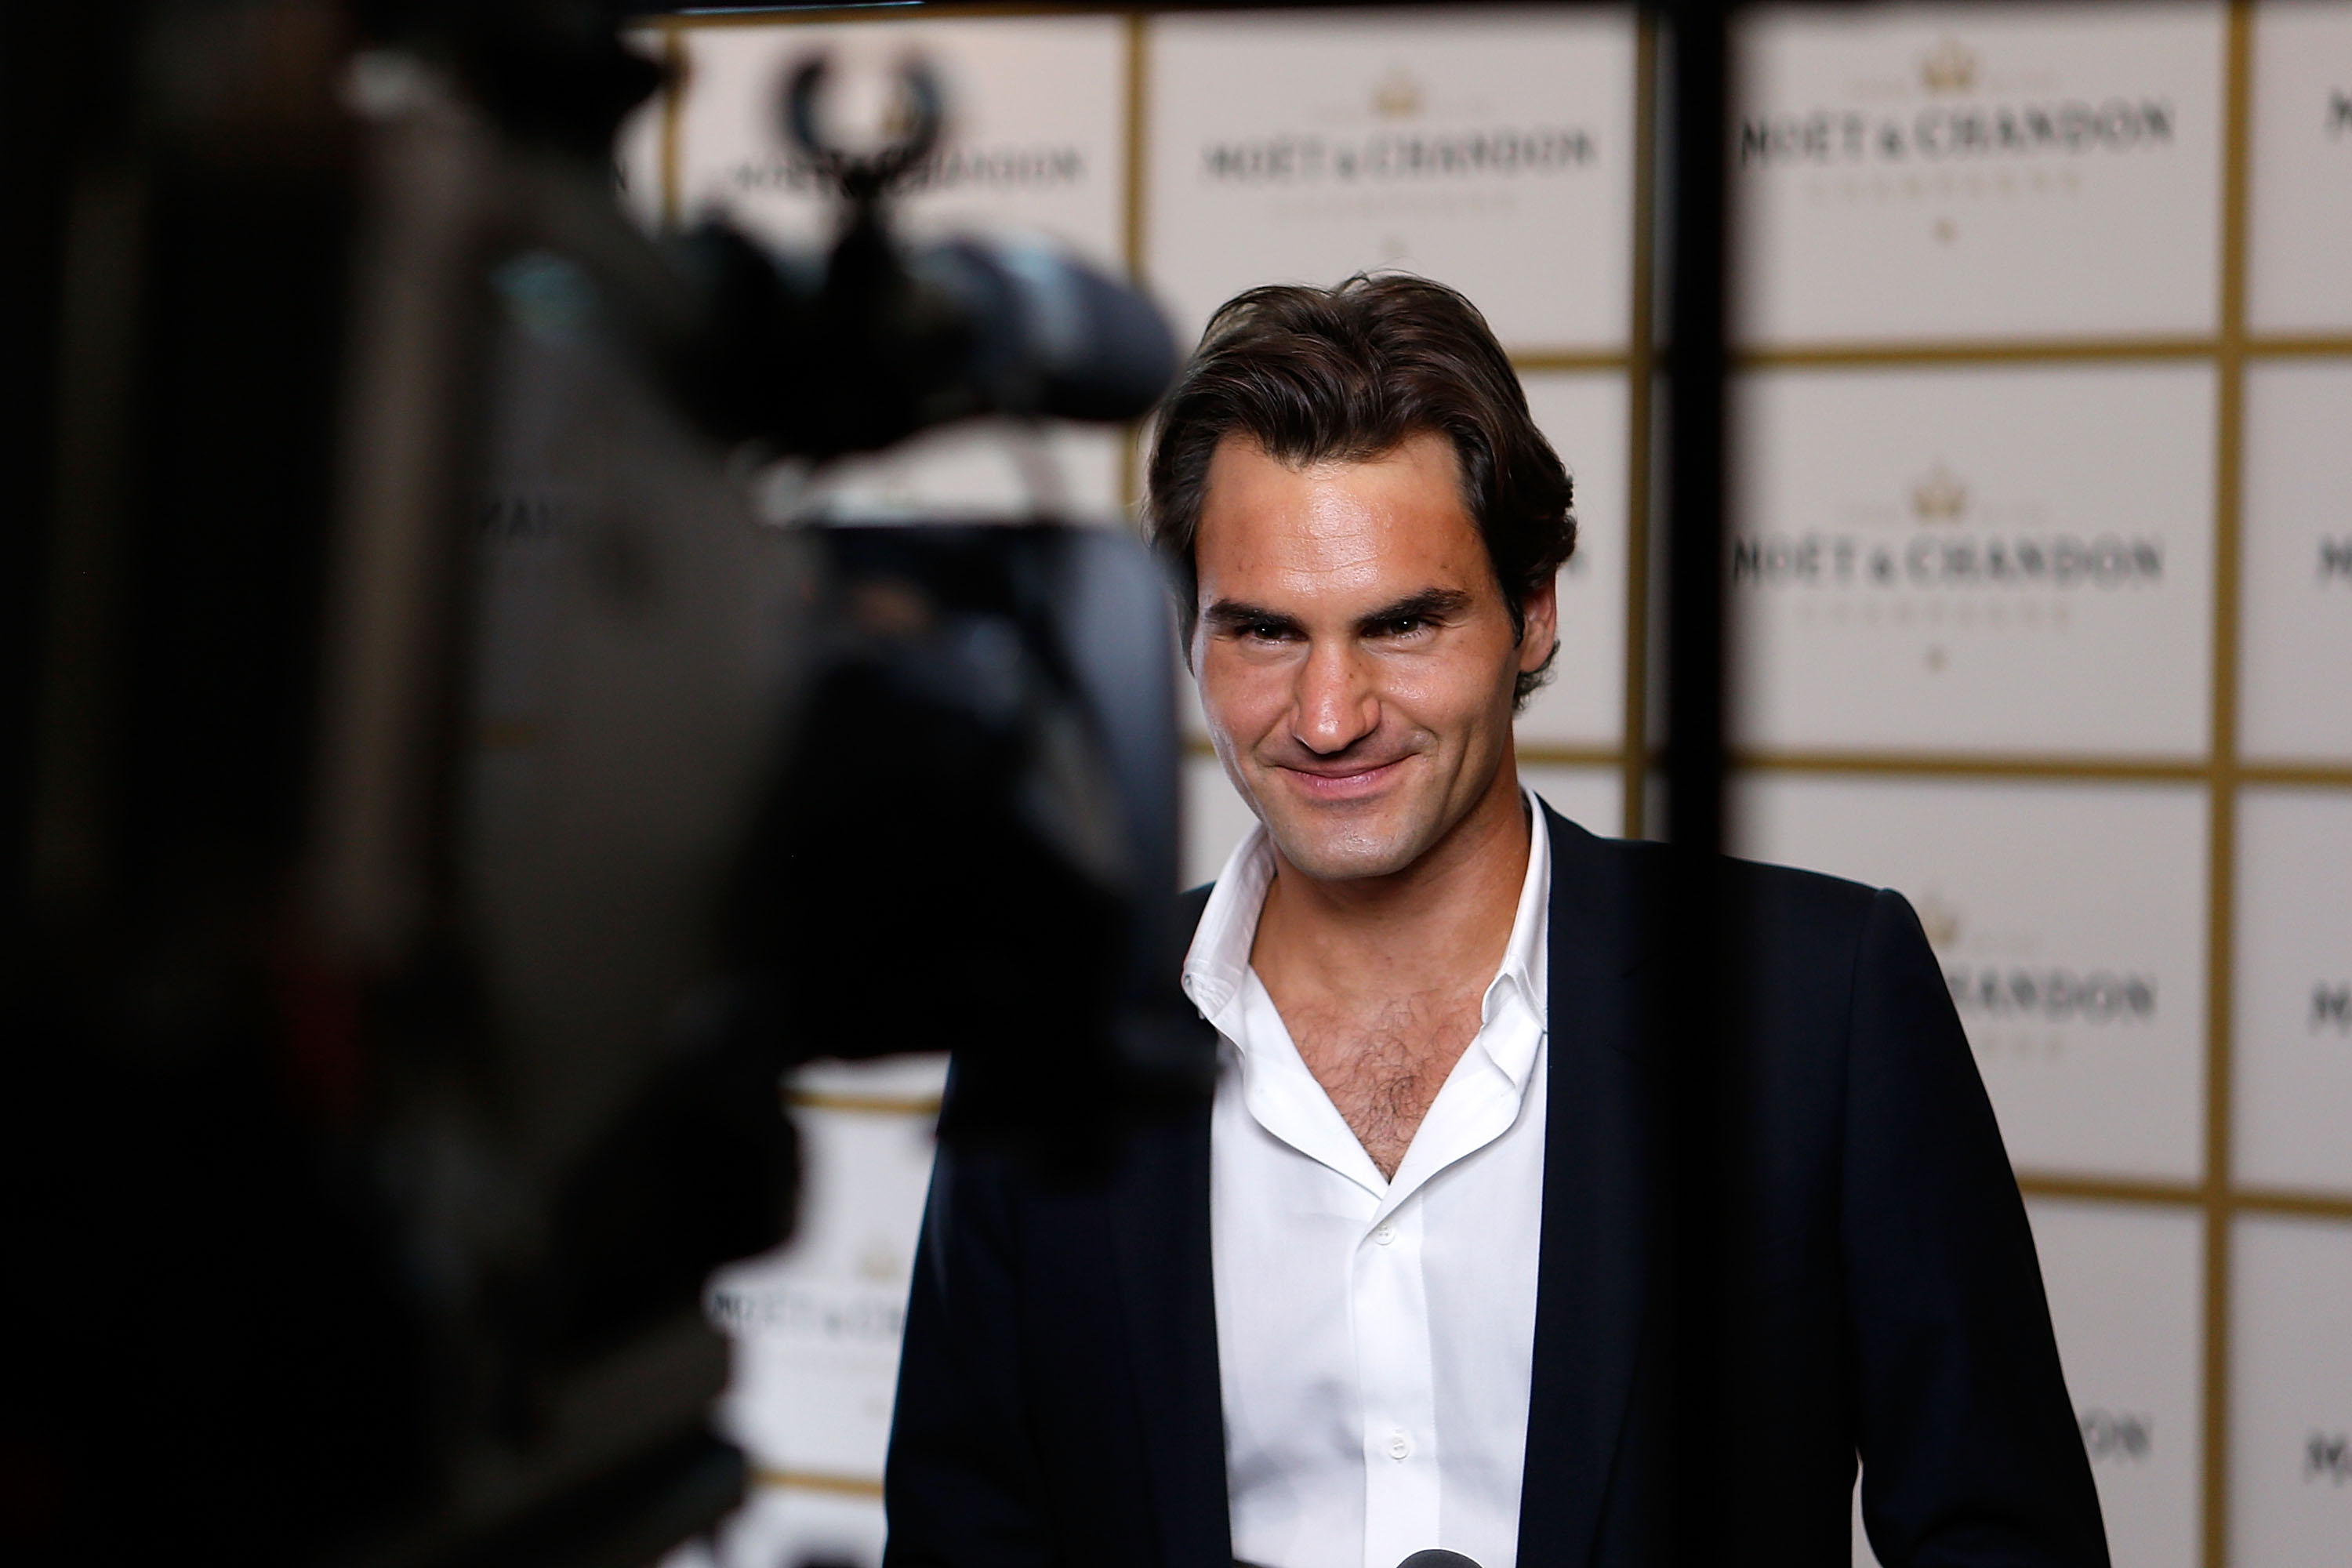 MELBOURNE, AUSTRALIA - JANUARY 09:  Roger Federer arrives at the Moet & Chandon Party at Melbourne's Crown Casiono on January 9, 2014 in Melbourne, Australia.  (Photo by Darrian Traynor/Getty Images)